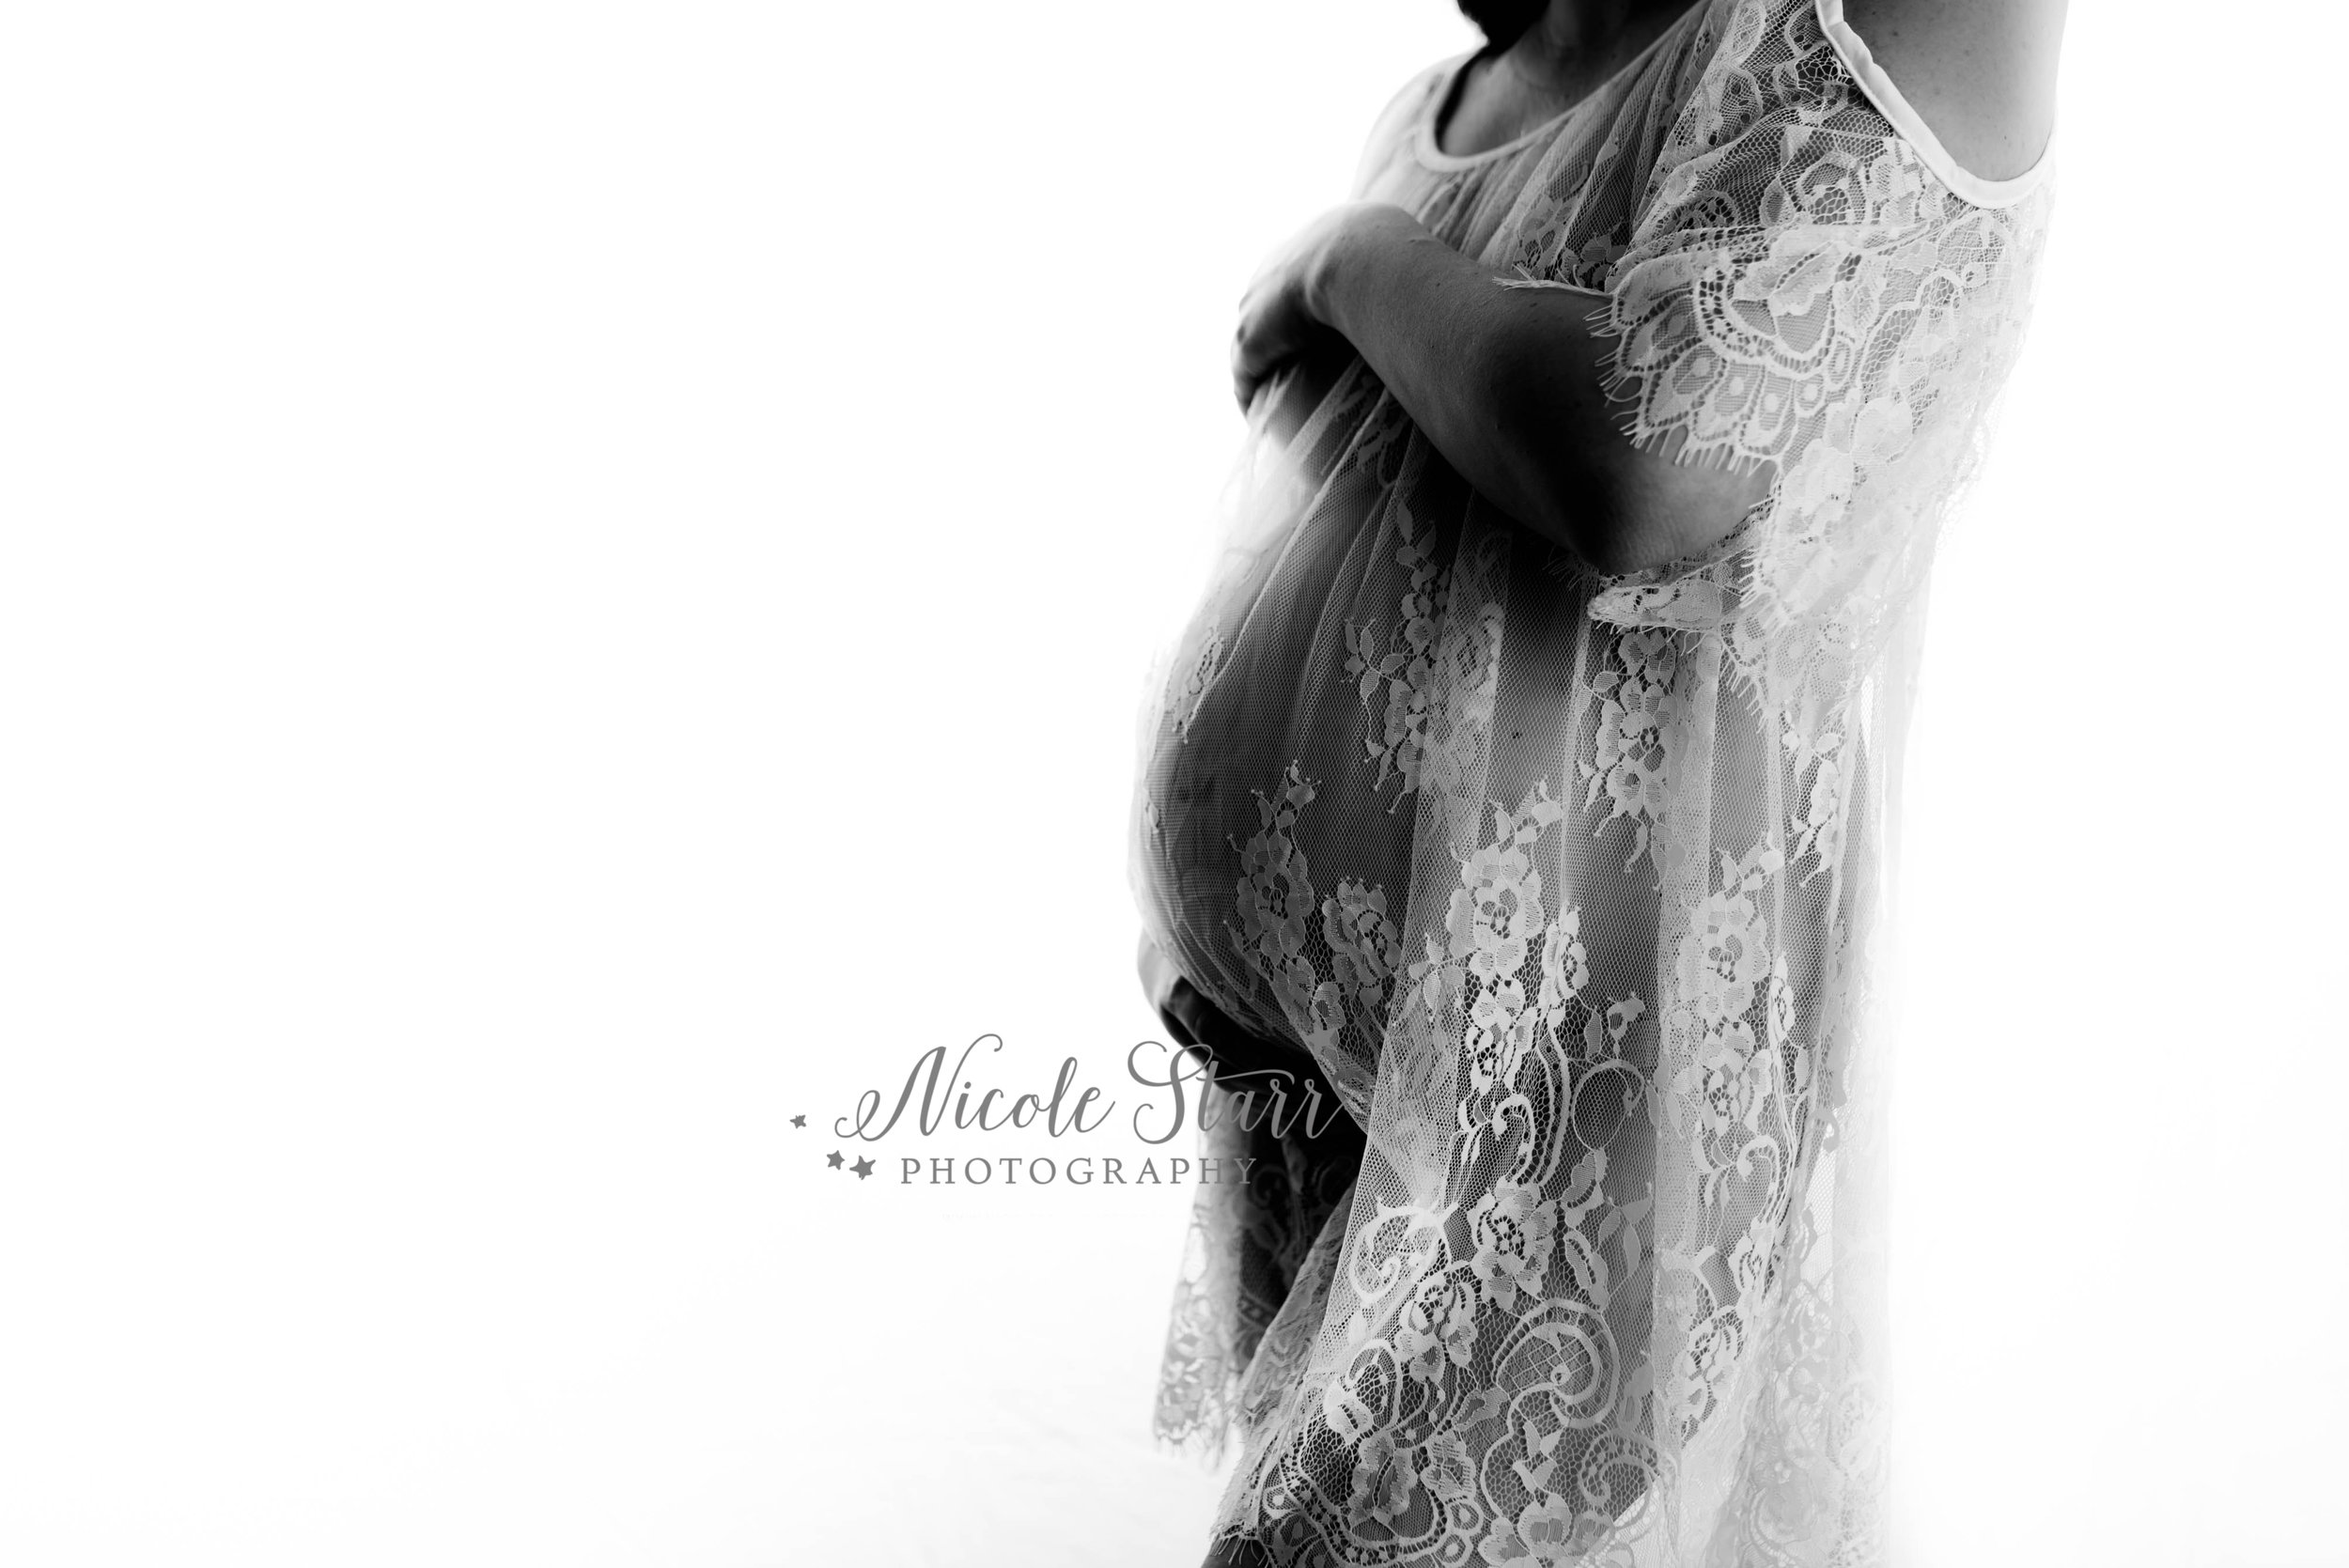 Nicole Starr Photography | Saratoga Springs Maternity Photographer | Boston Maternity Photographer | Upstate NY Maternity Photographer | Maternity Photographer | Maternity session | Maternity dress